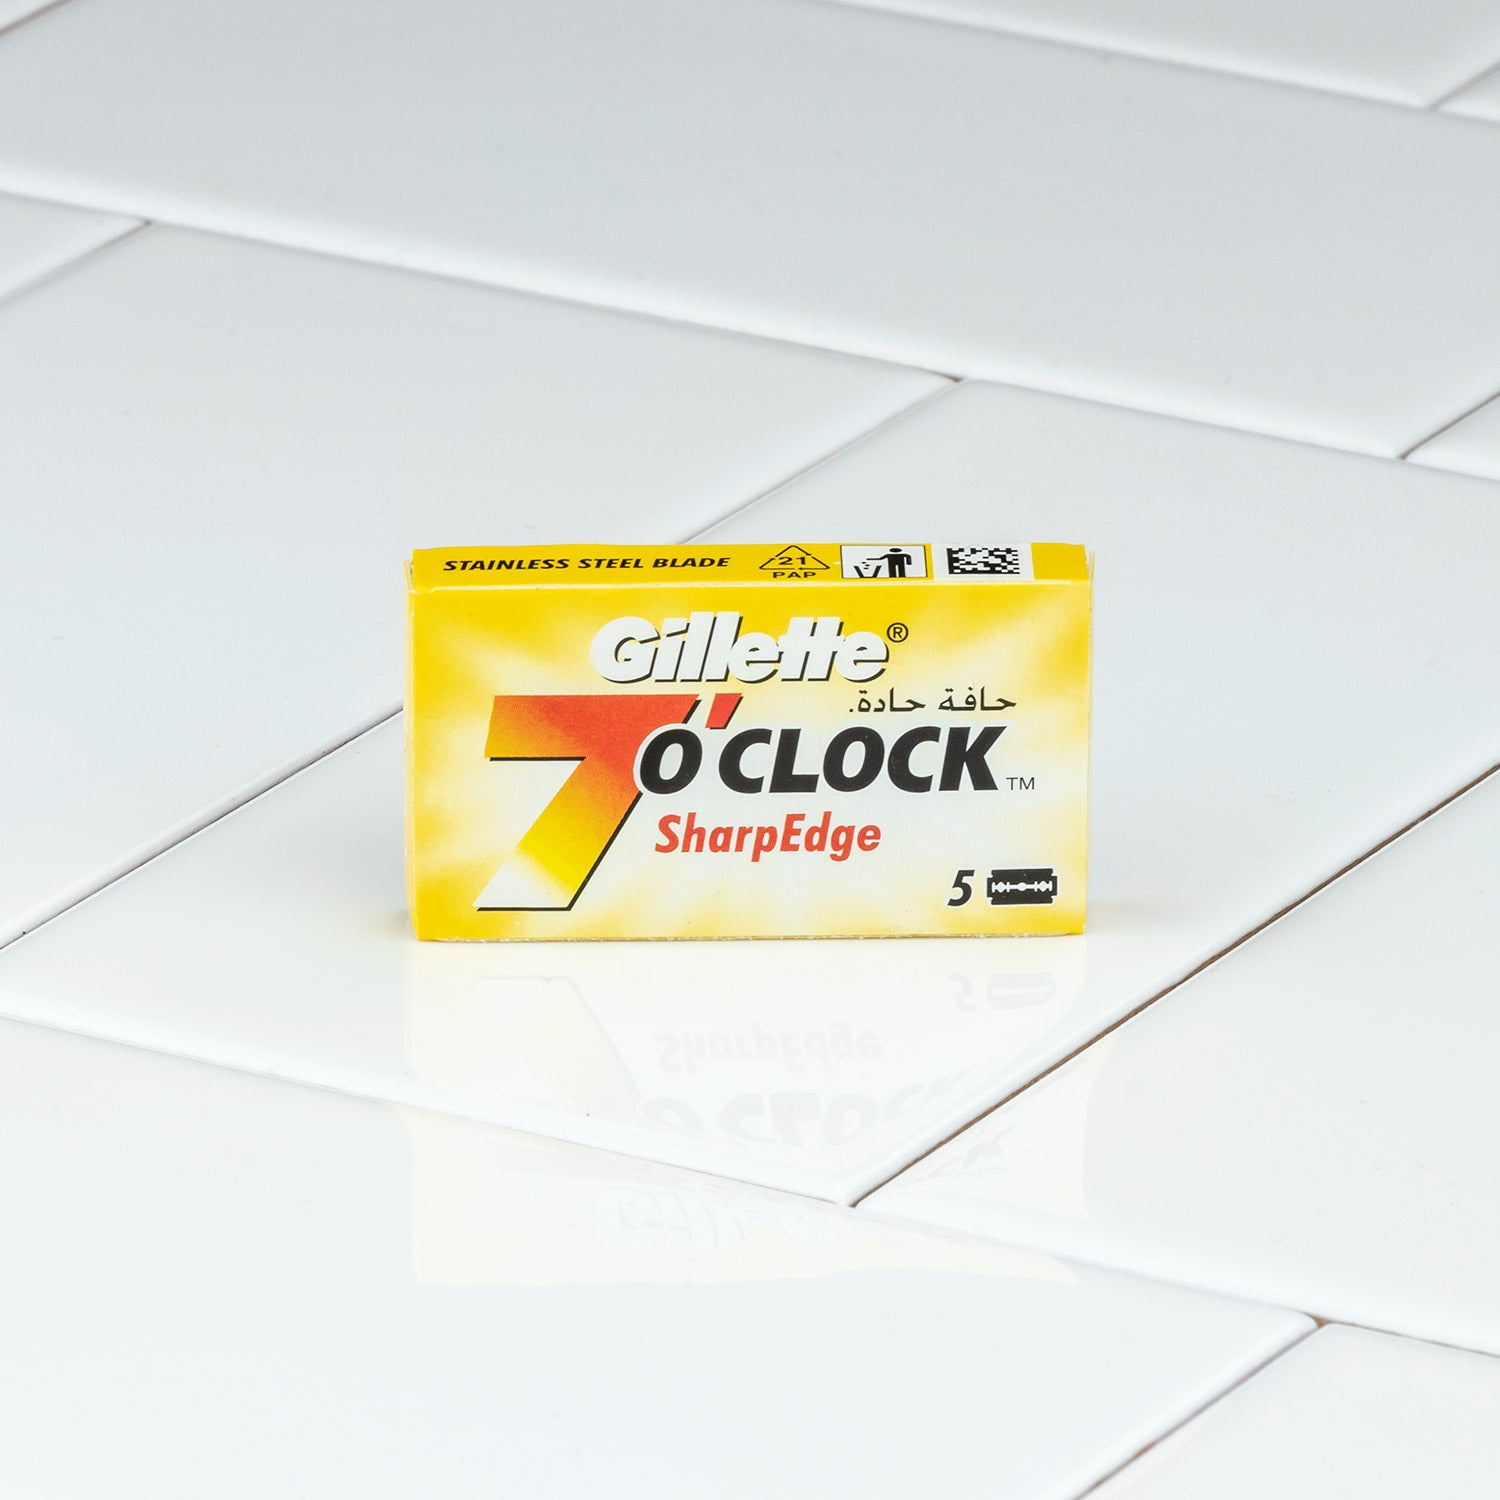 Gillette 7 O'Clock SharpEdge Yellow Double Edge Razor Blades, 5 Pack